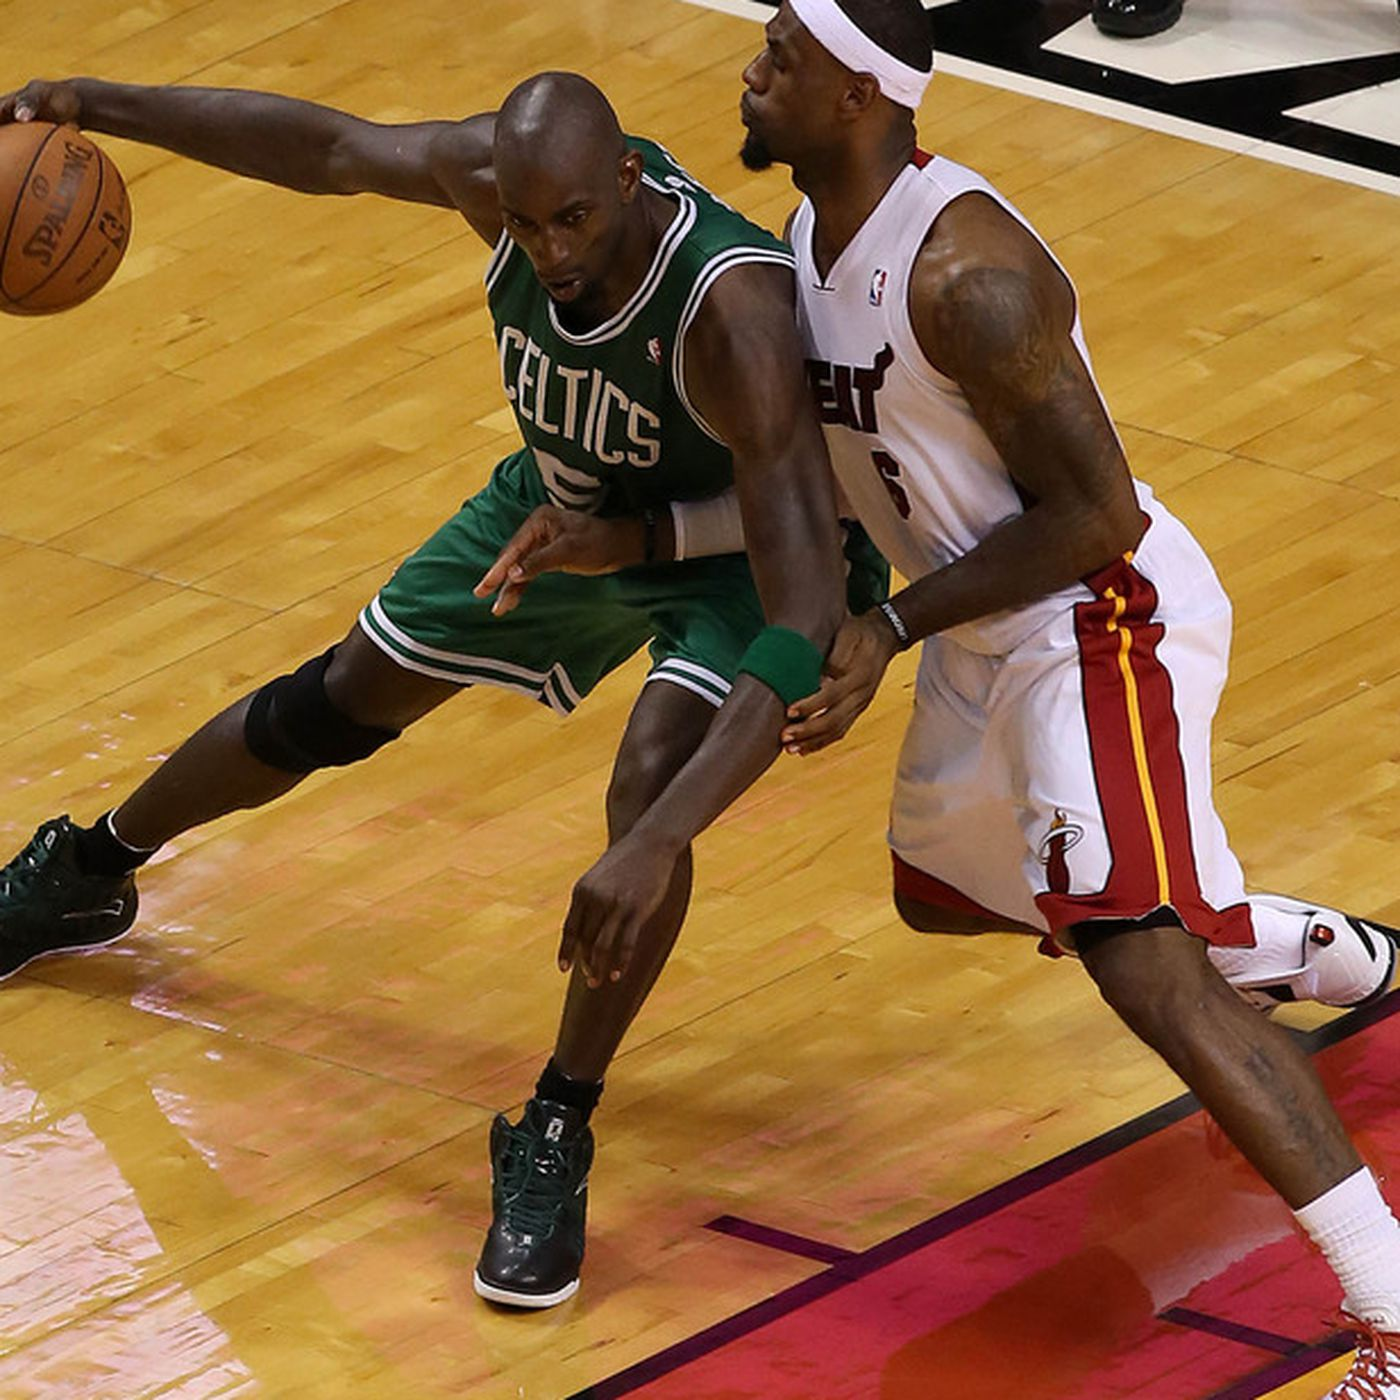 2012 Nba Playoffs Heat Vs Celtics Game 7 Game Time Tv Schedule And More Sb Nation Boston